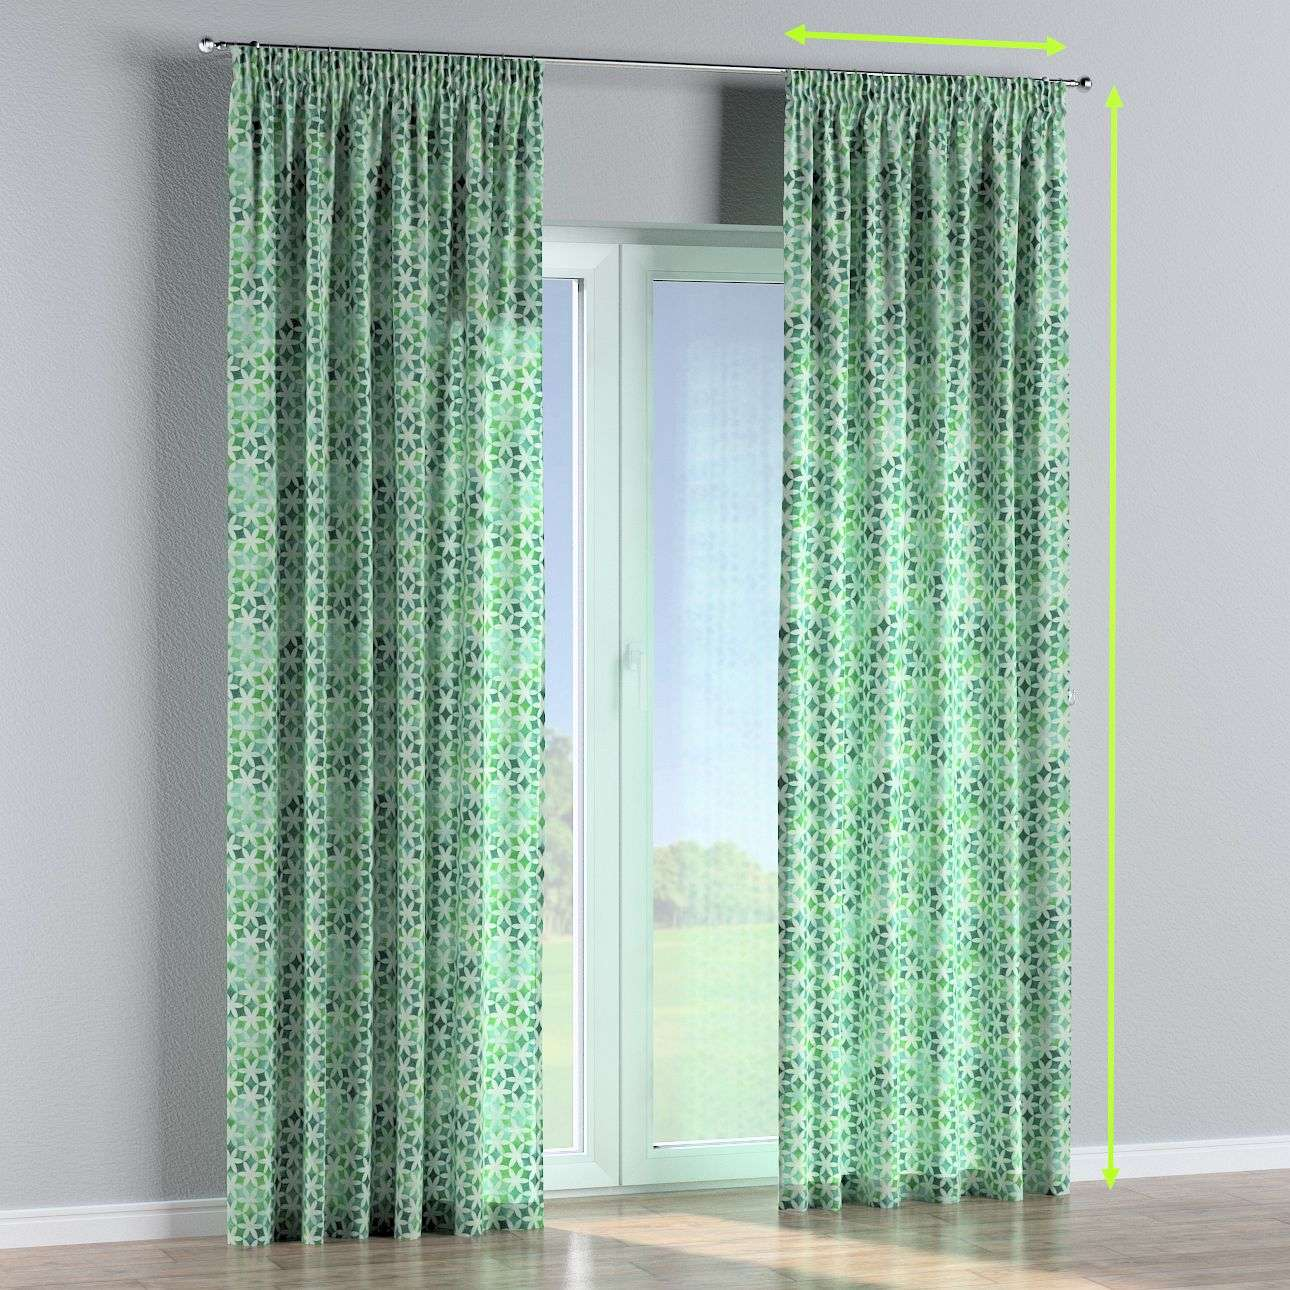 Pencil pleat curtains in collection Urban Jungle, fabric: 141-65